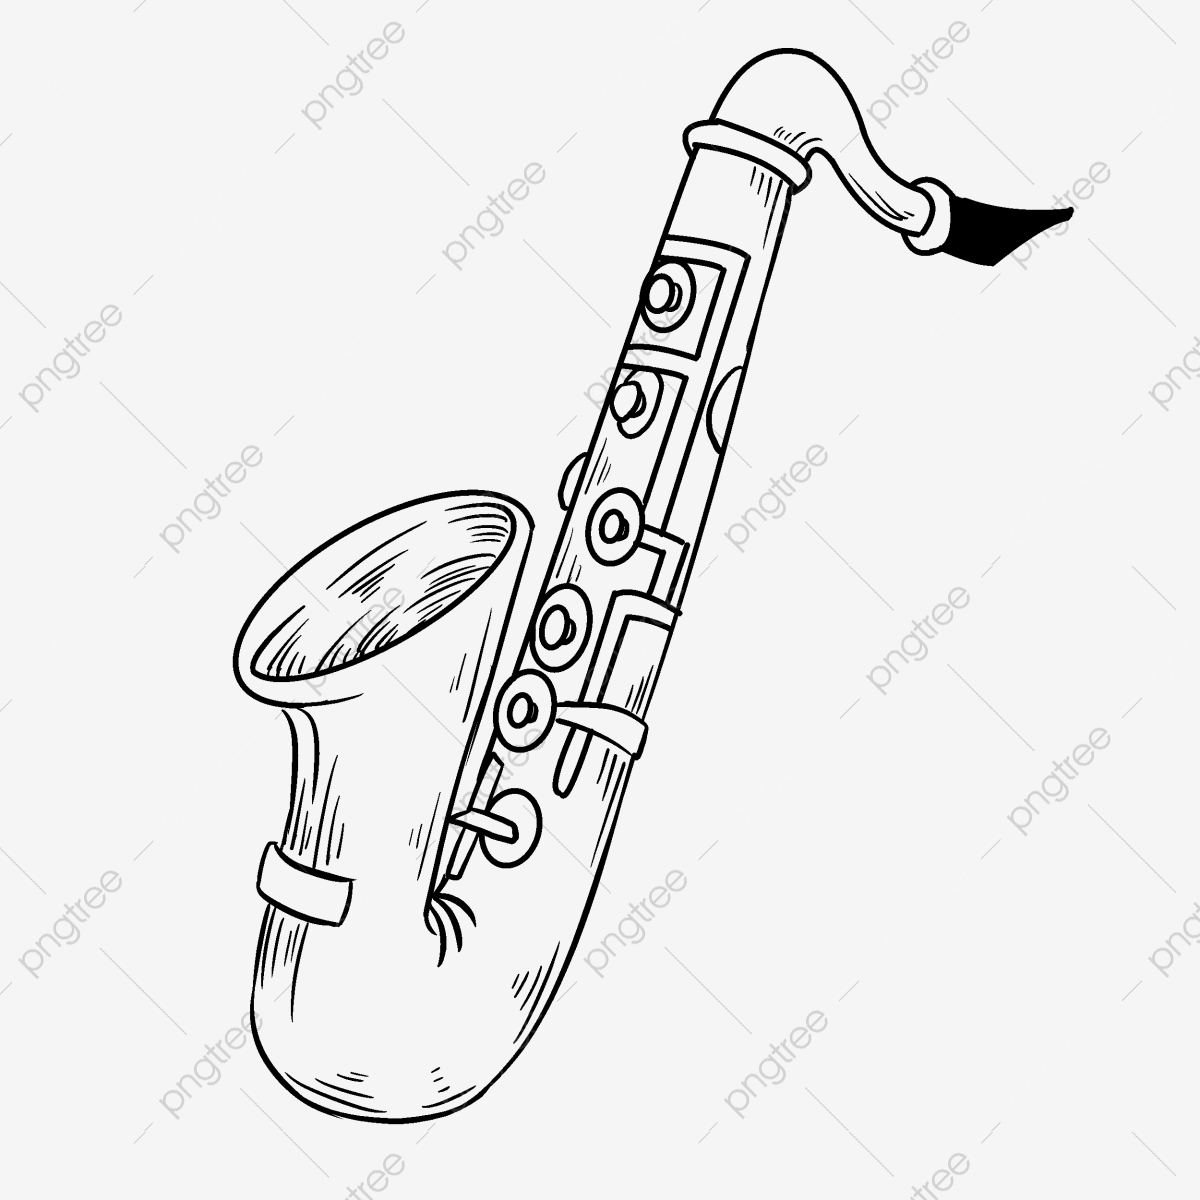 musical instrument drawings line drawing western musical instrument saxophone musical drawings instrument musical